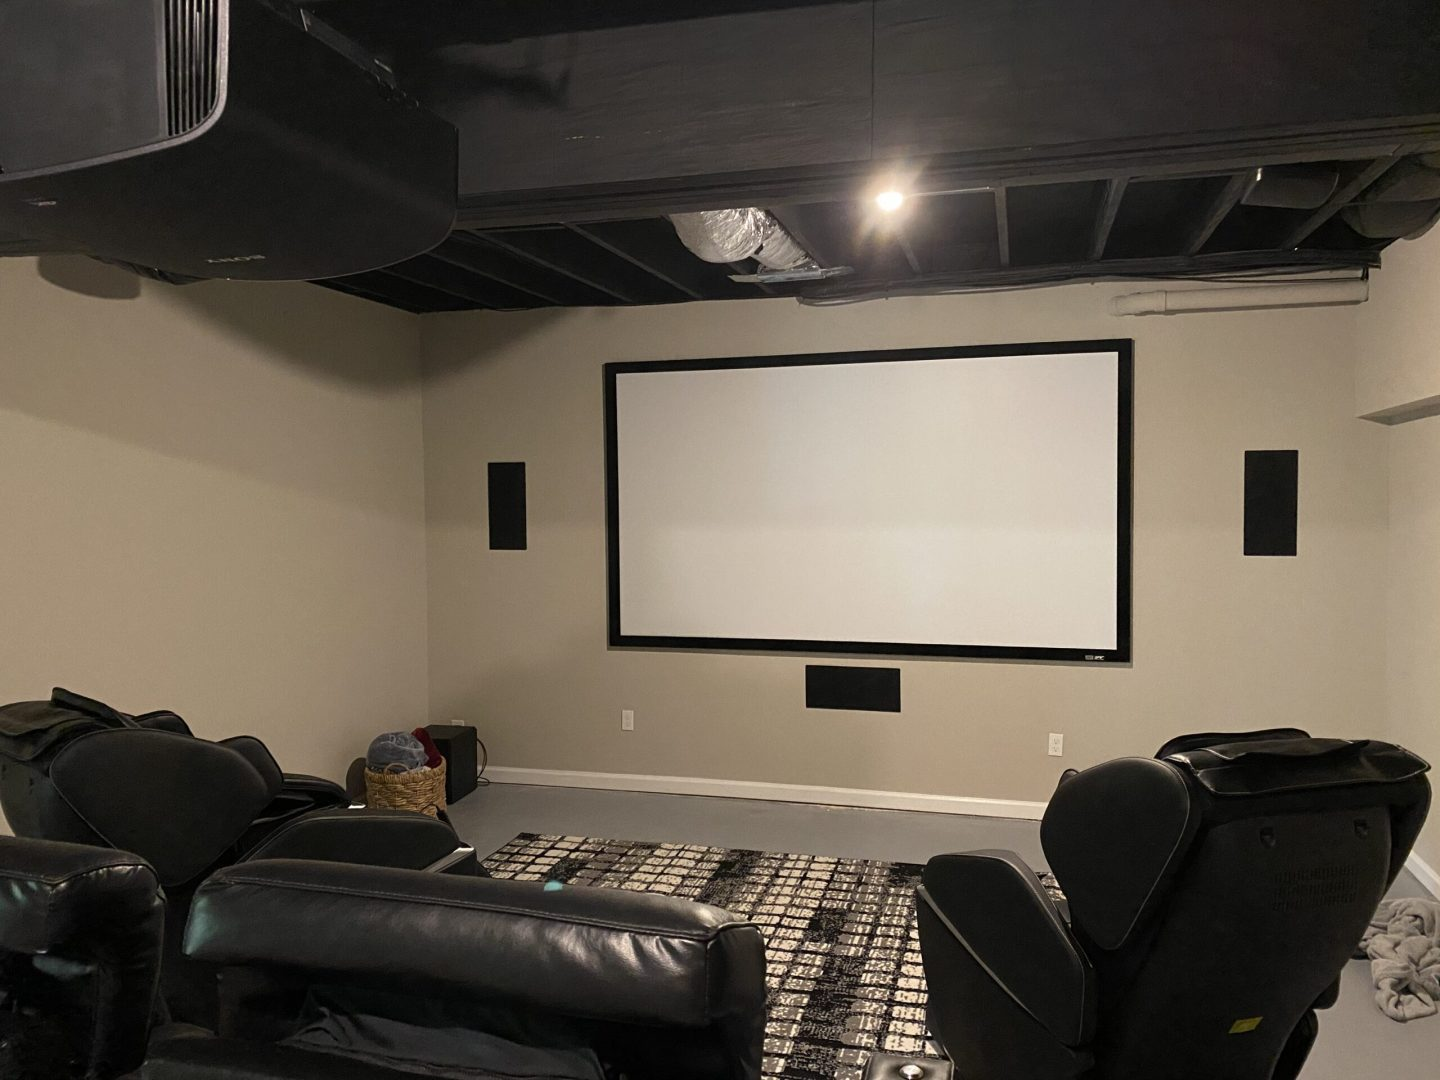 Extra large TV installation and wall mount with surround sound system